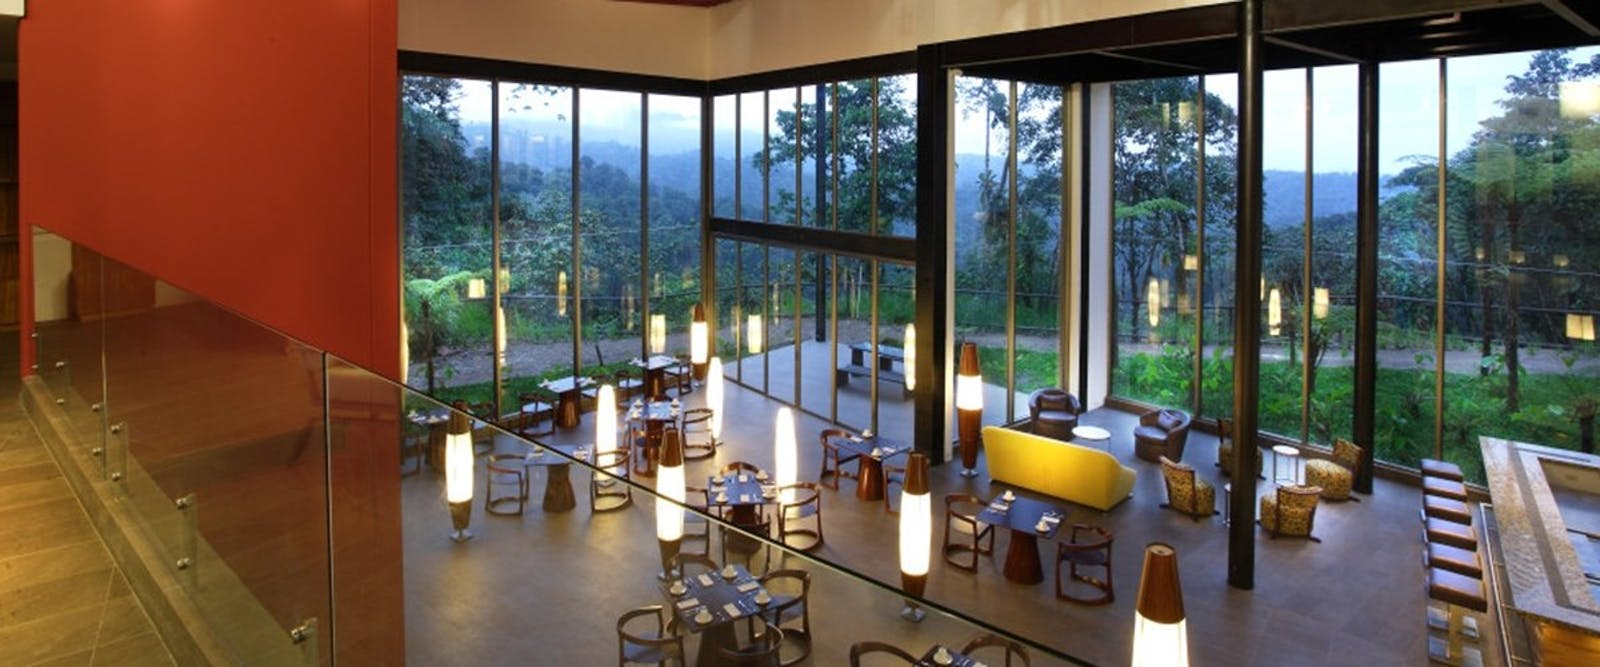 Interior of Mashpi Lodge, Ecuador